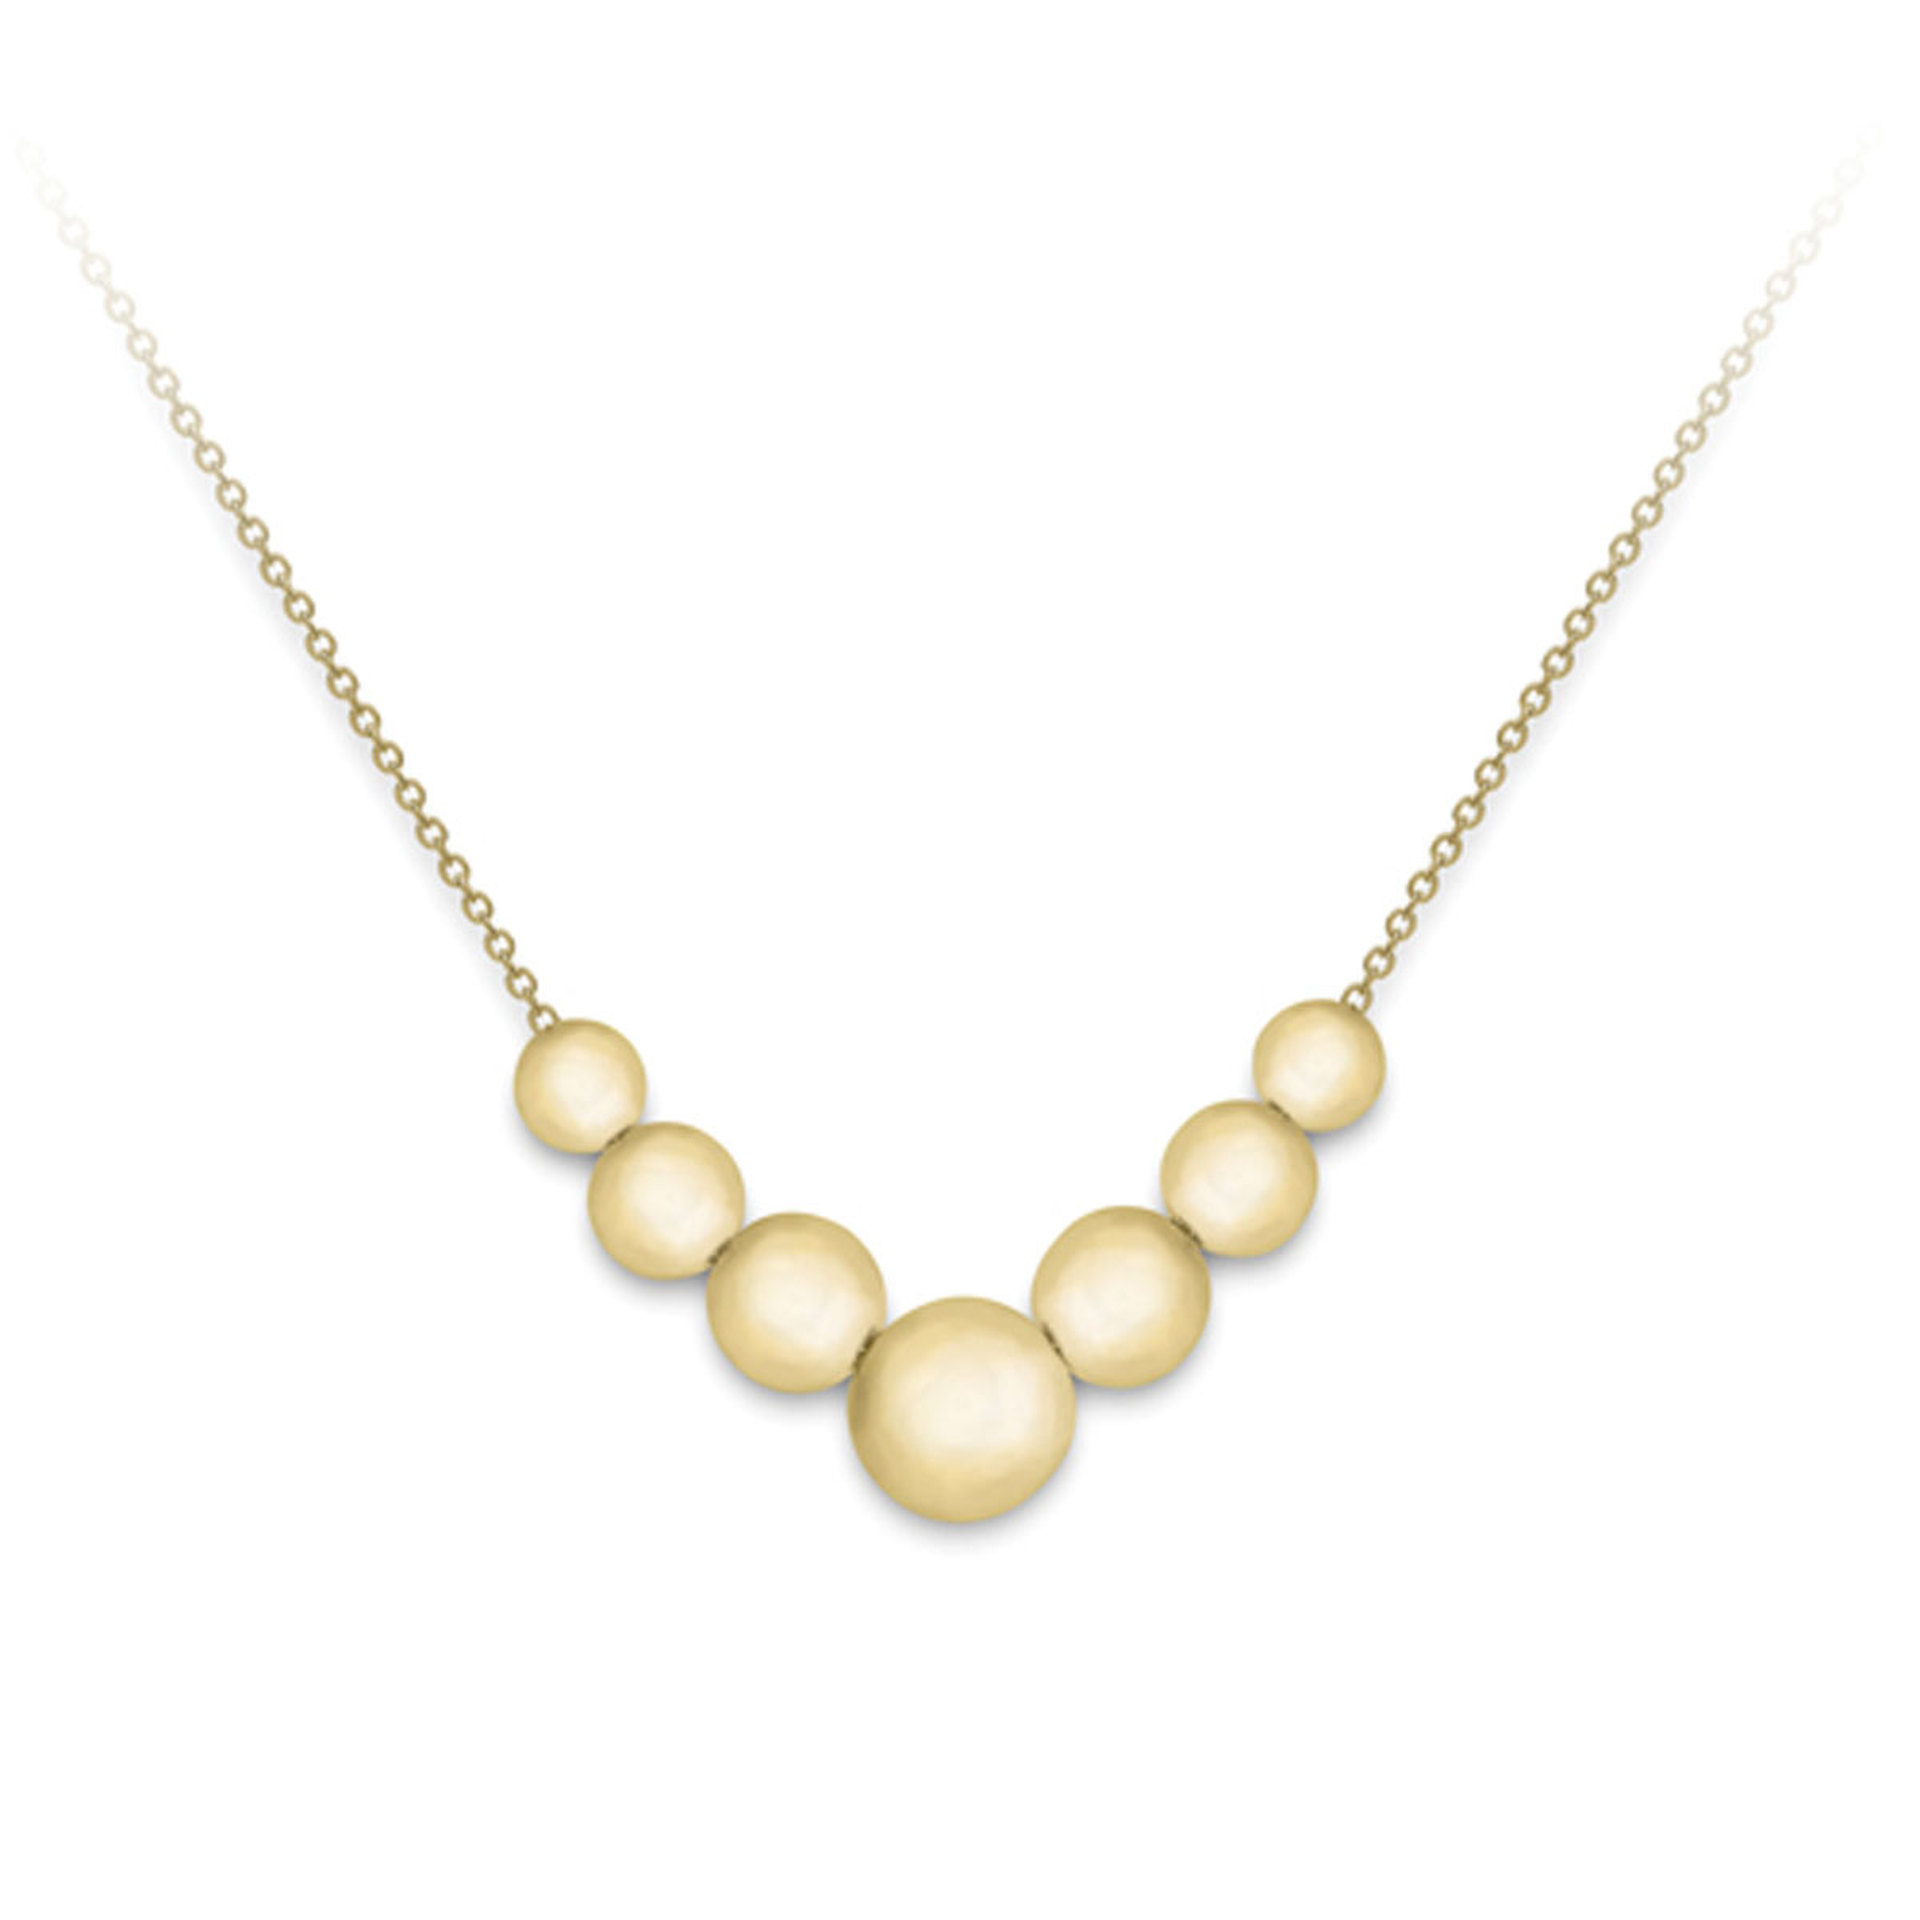 9ct Yellow Gold Beaded Necklet